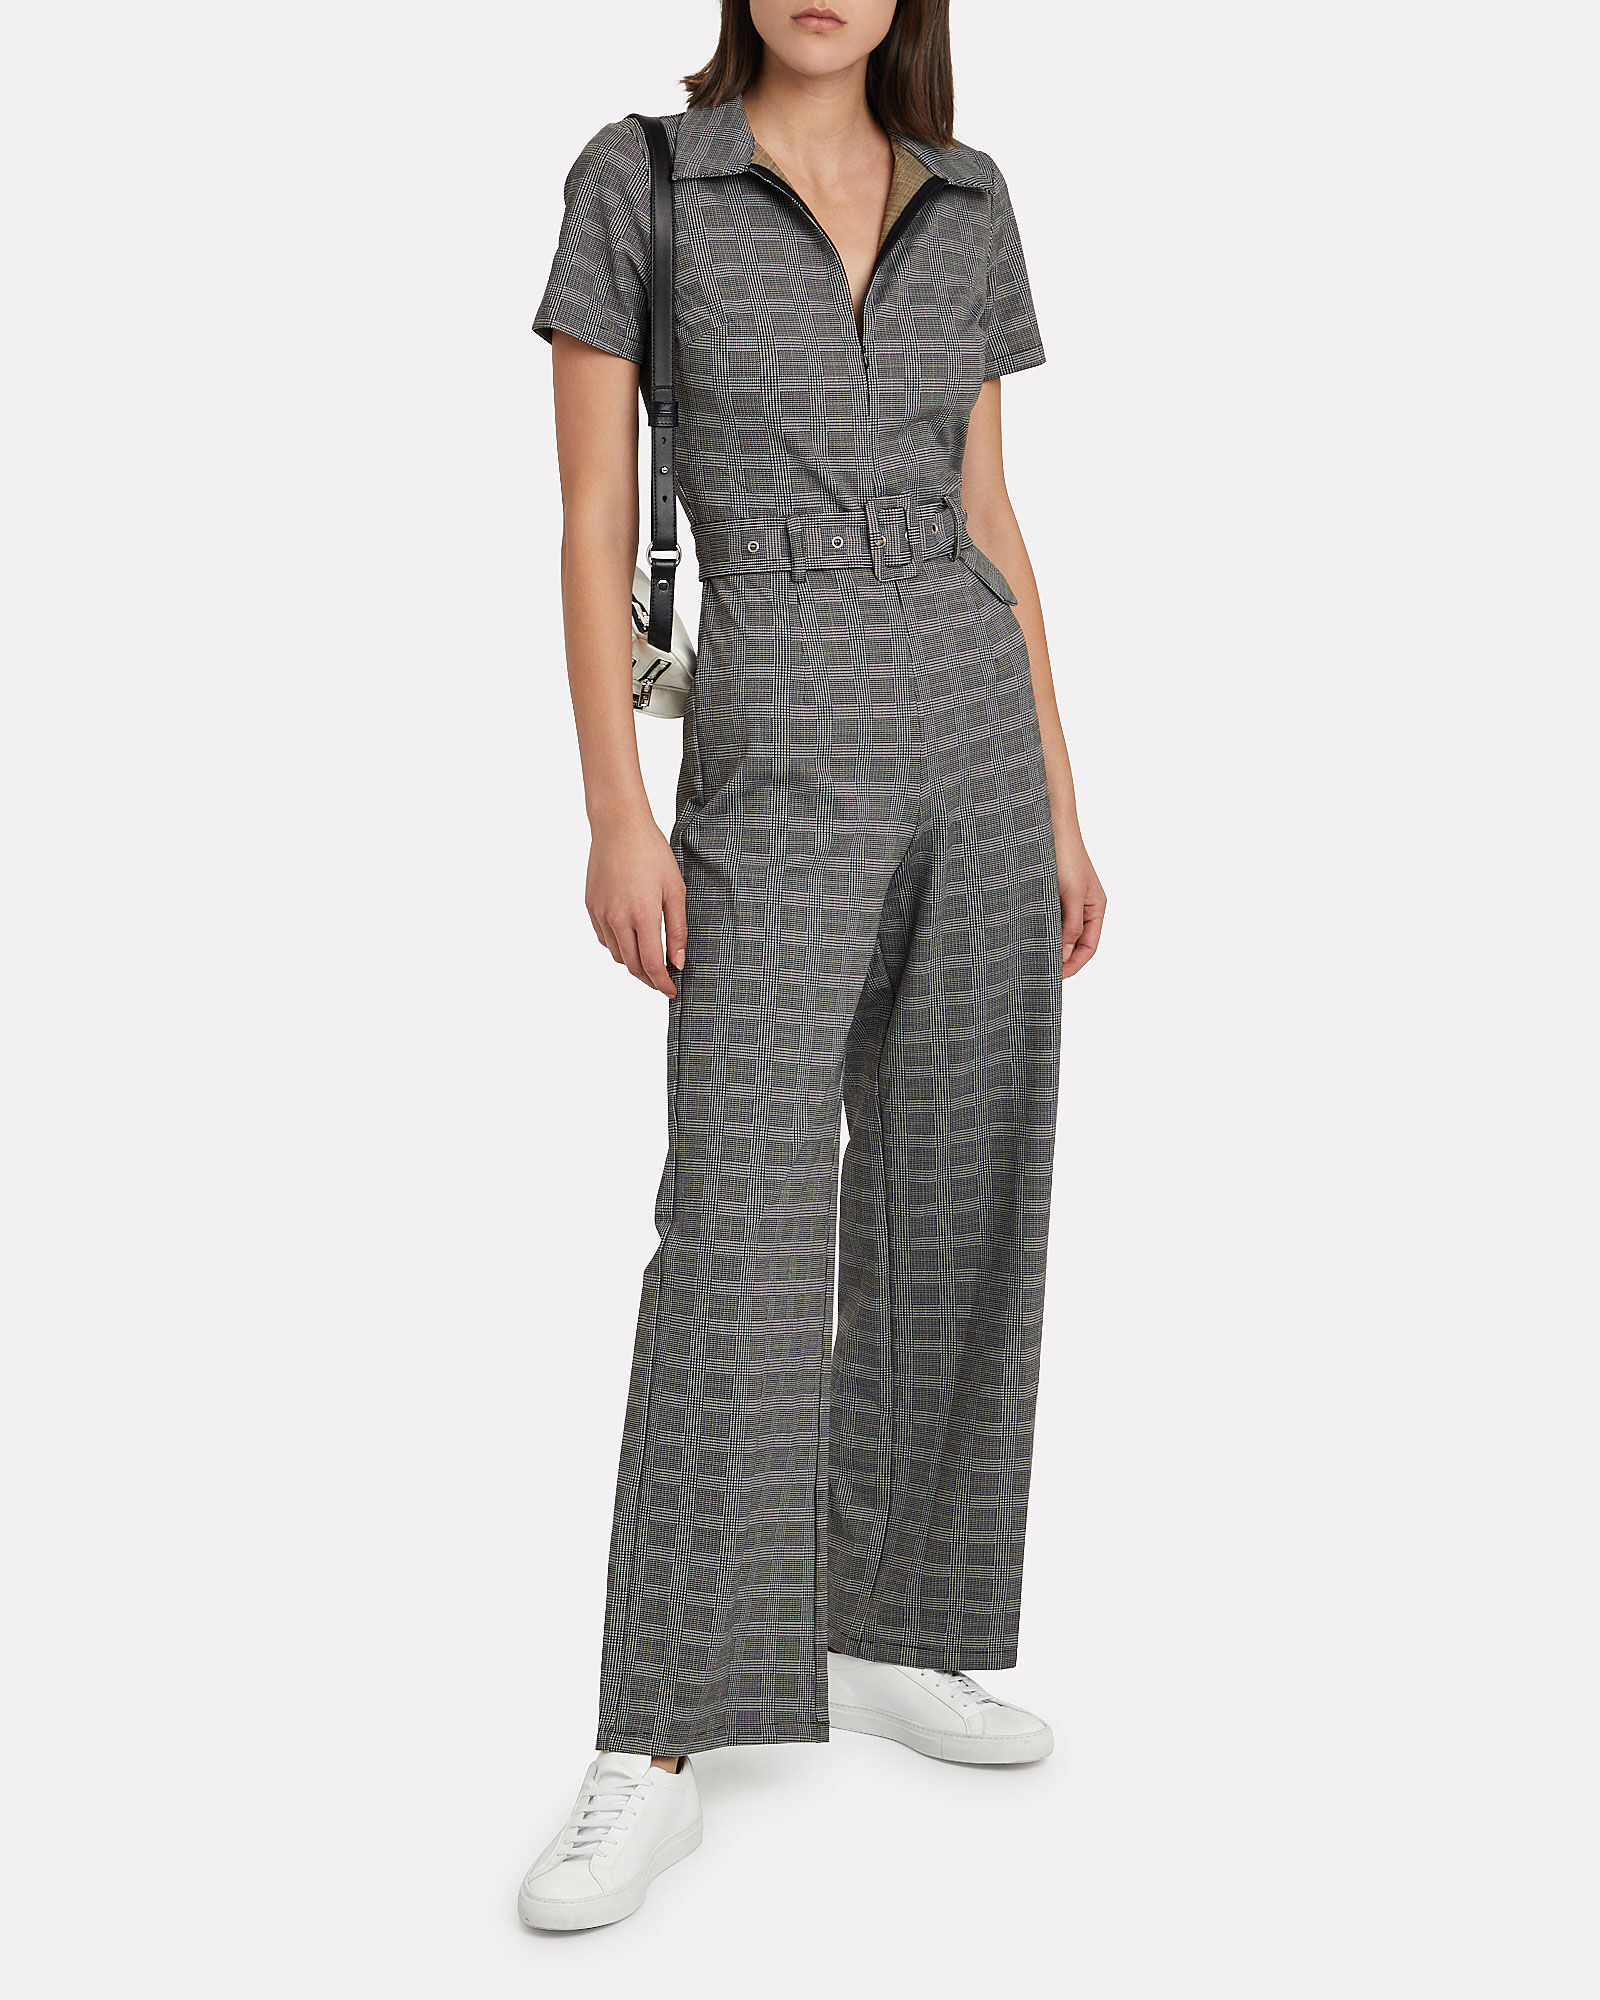 Peta Glen Plaid Boiler Jumpsuit, MULTI, hi-res